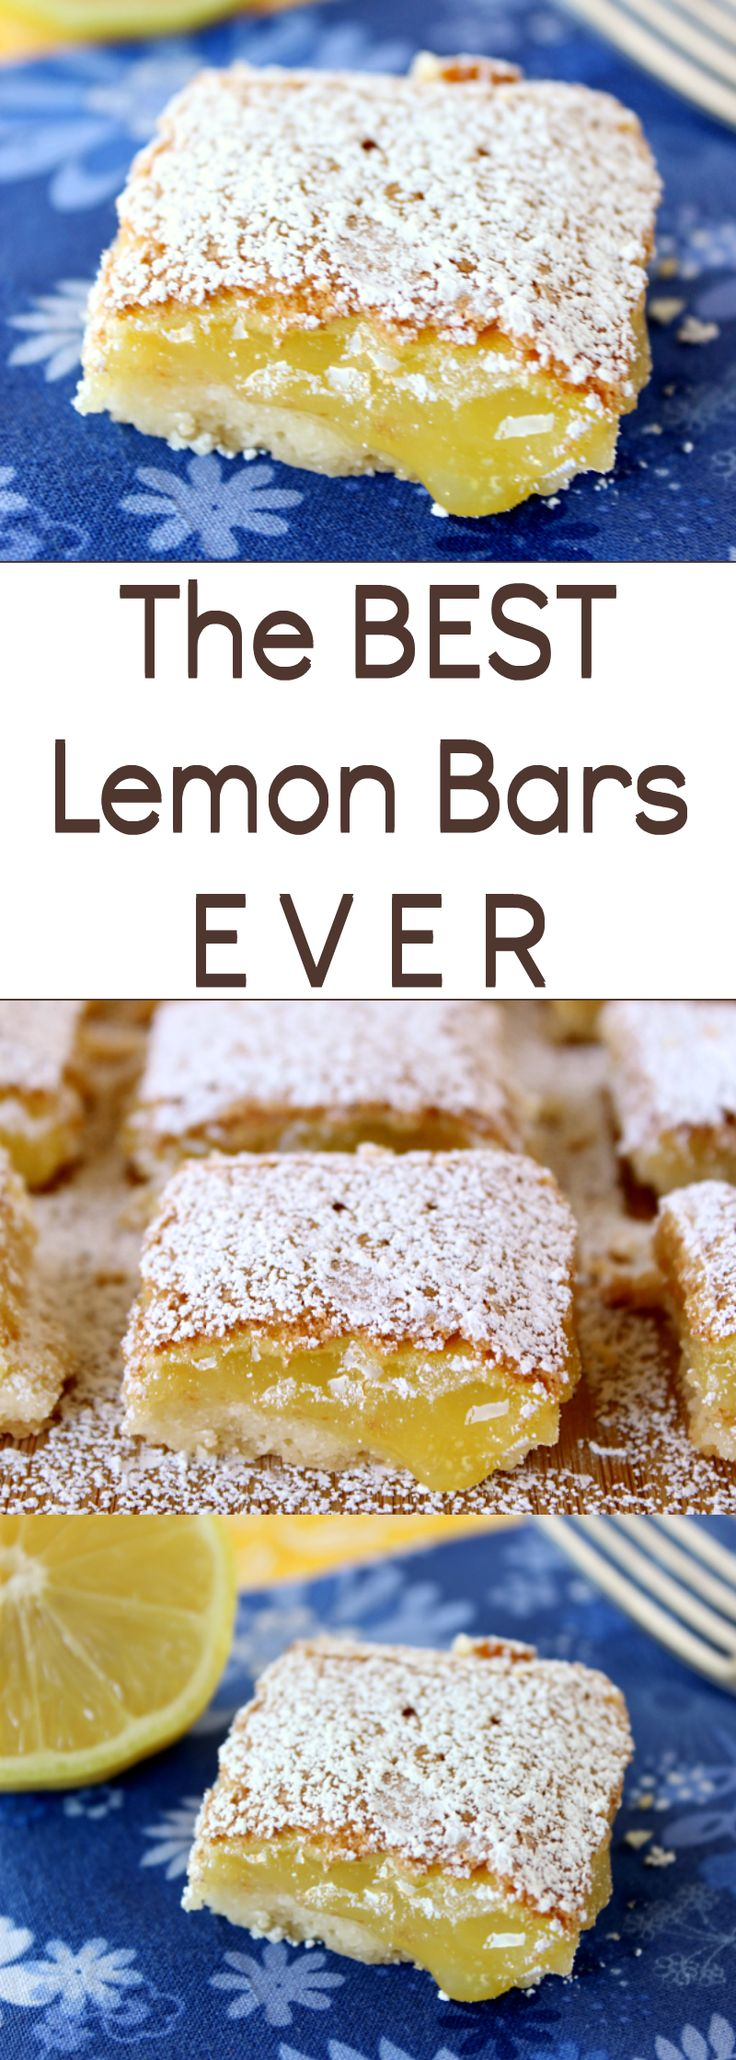 The BEST Lemon Bars EVER are a great way to welcome Spring! If the weather's not cooperating where you are, these bars will surely give your taste buds a tease and get your mind in Spring mode!